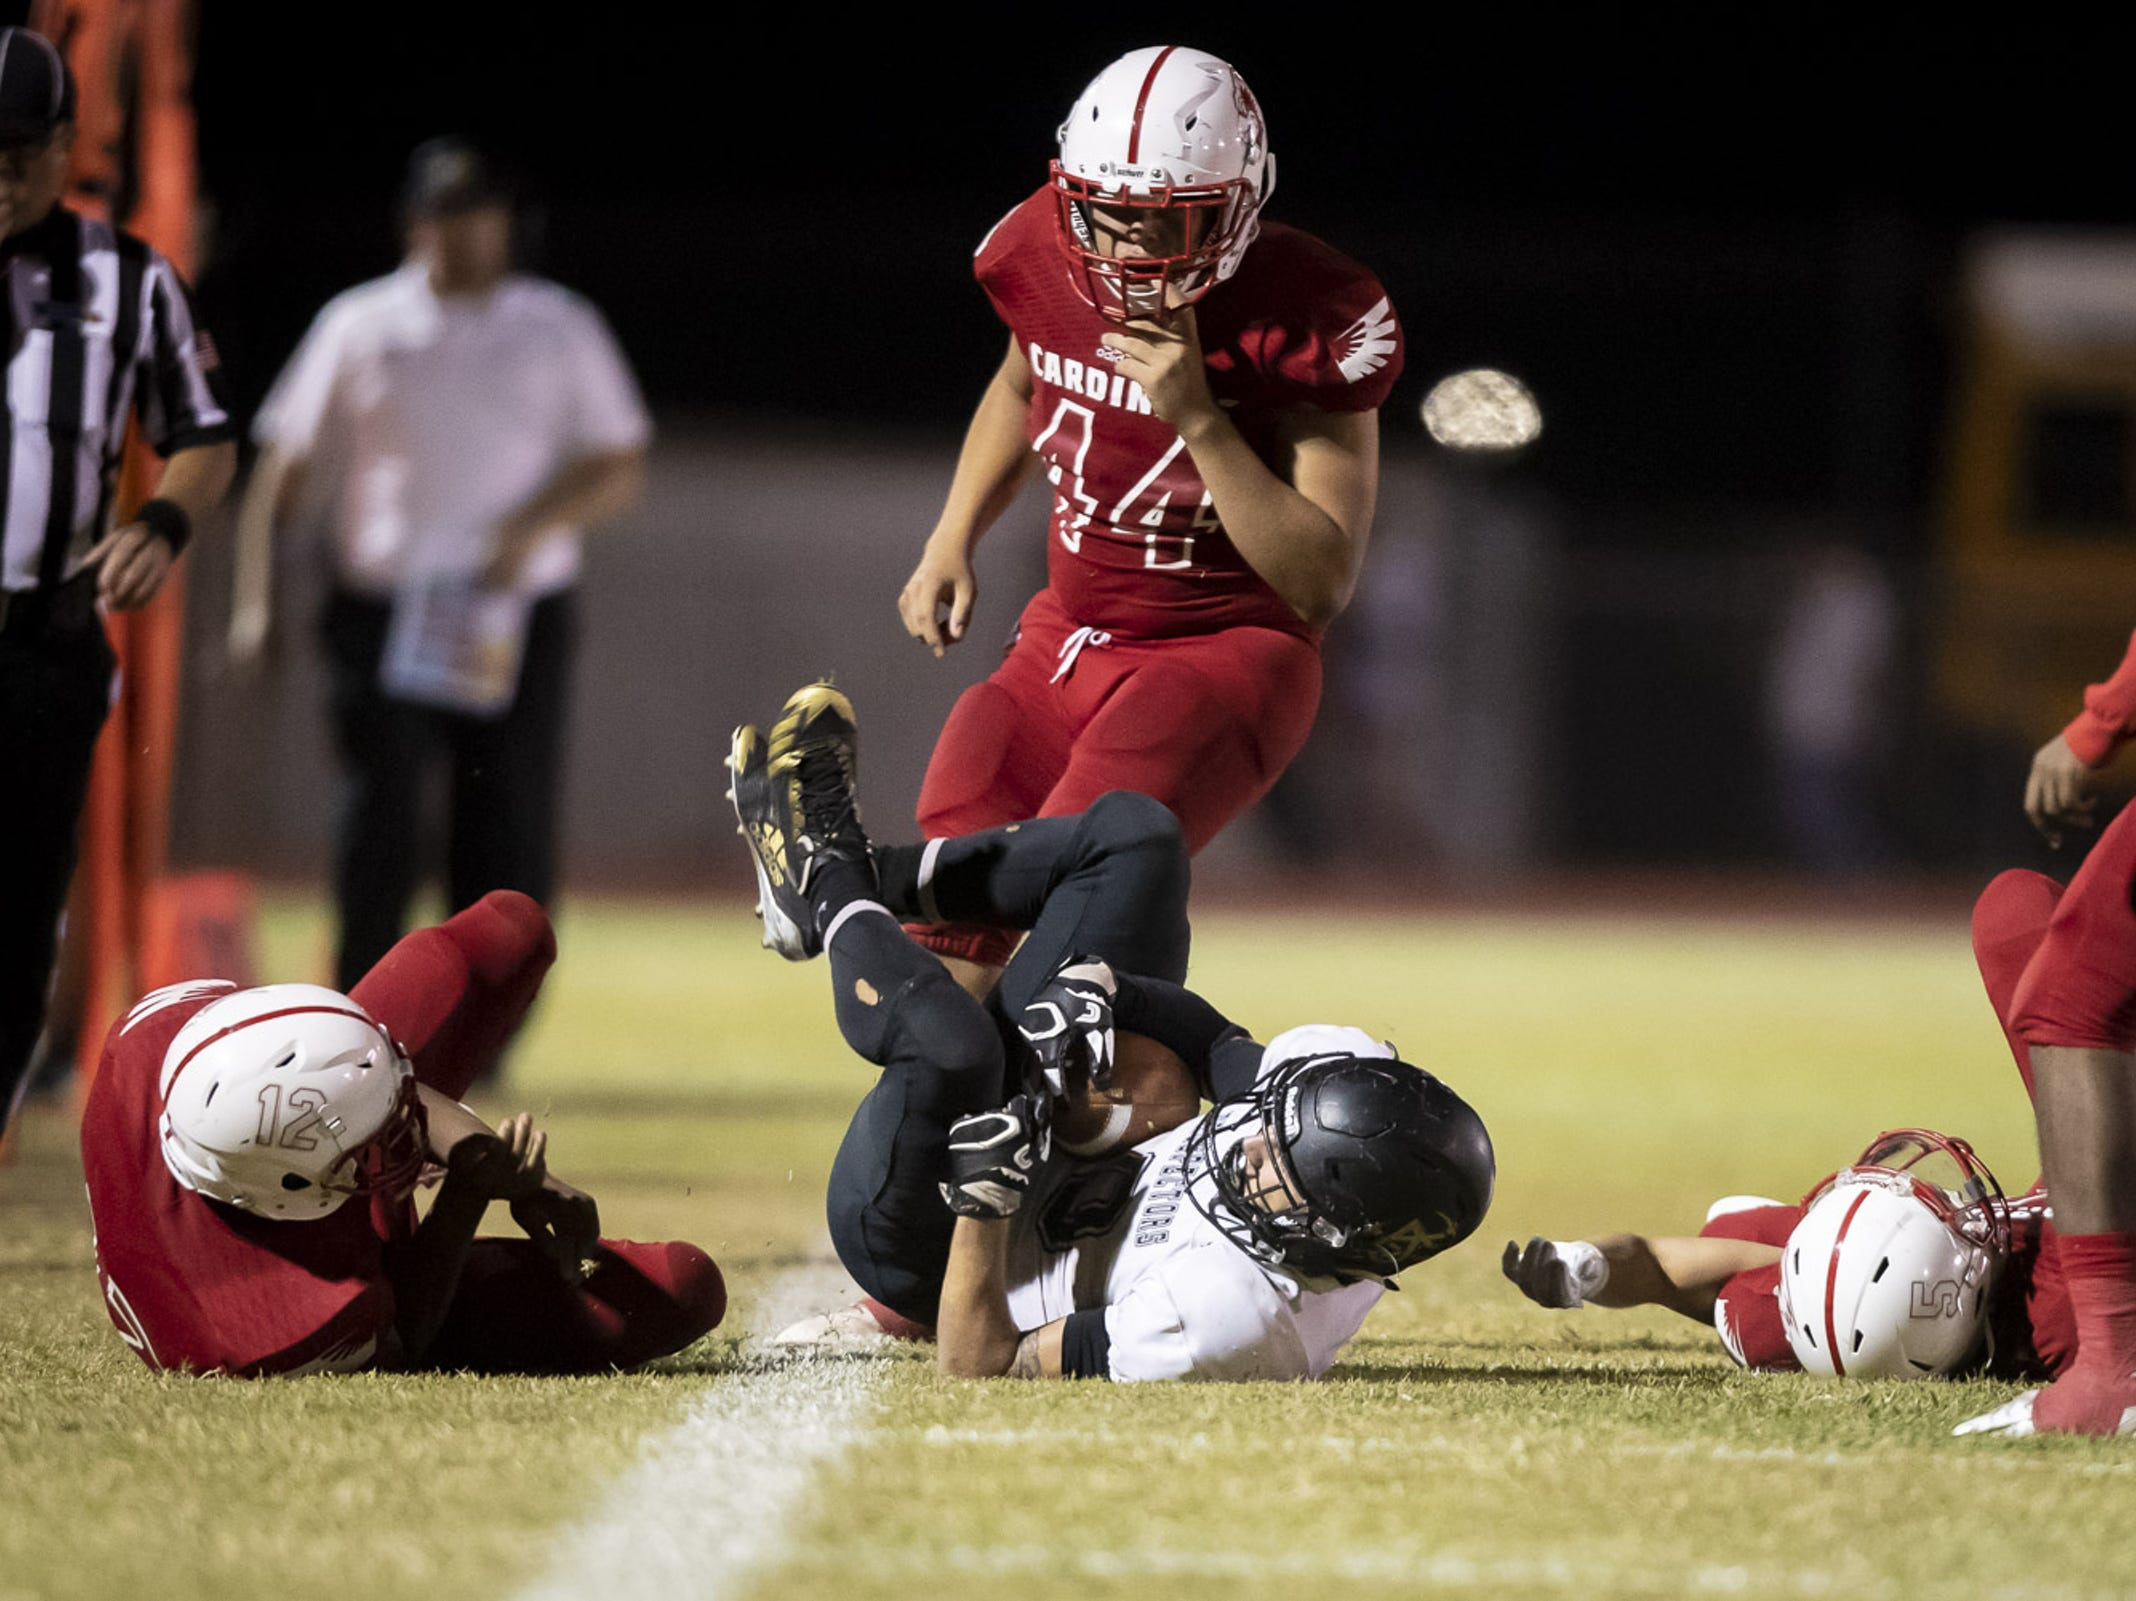 William Lohman (9) of the Apache Junction Prospectors is tackled after running the ball against the Glendale Cardinals at Glendale High School on Friday, Oct. 19, 2018 in Glendale, Arizona. #azhsfb